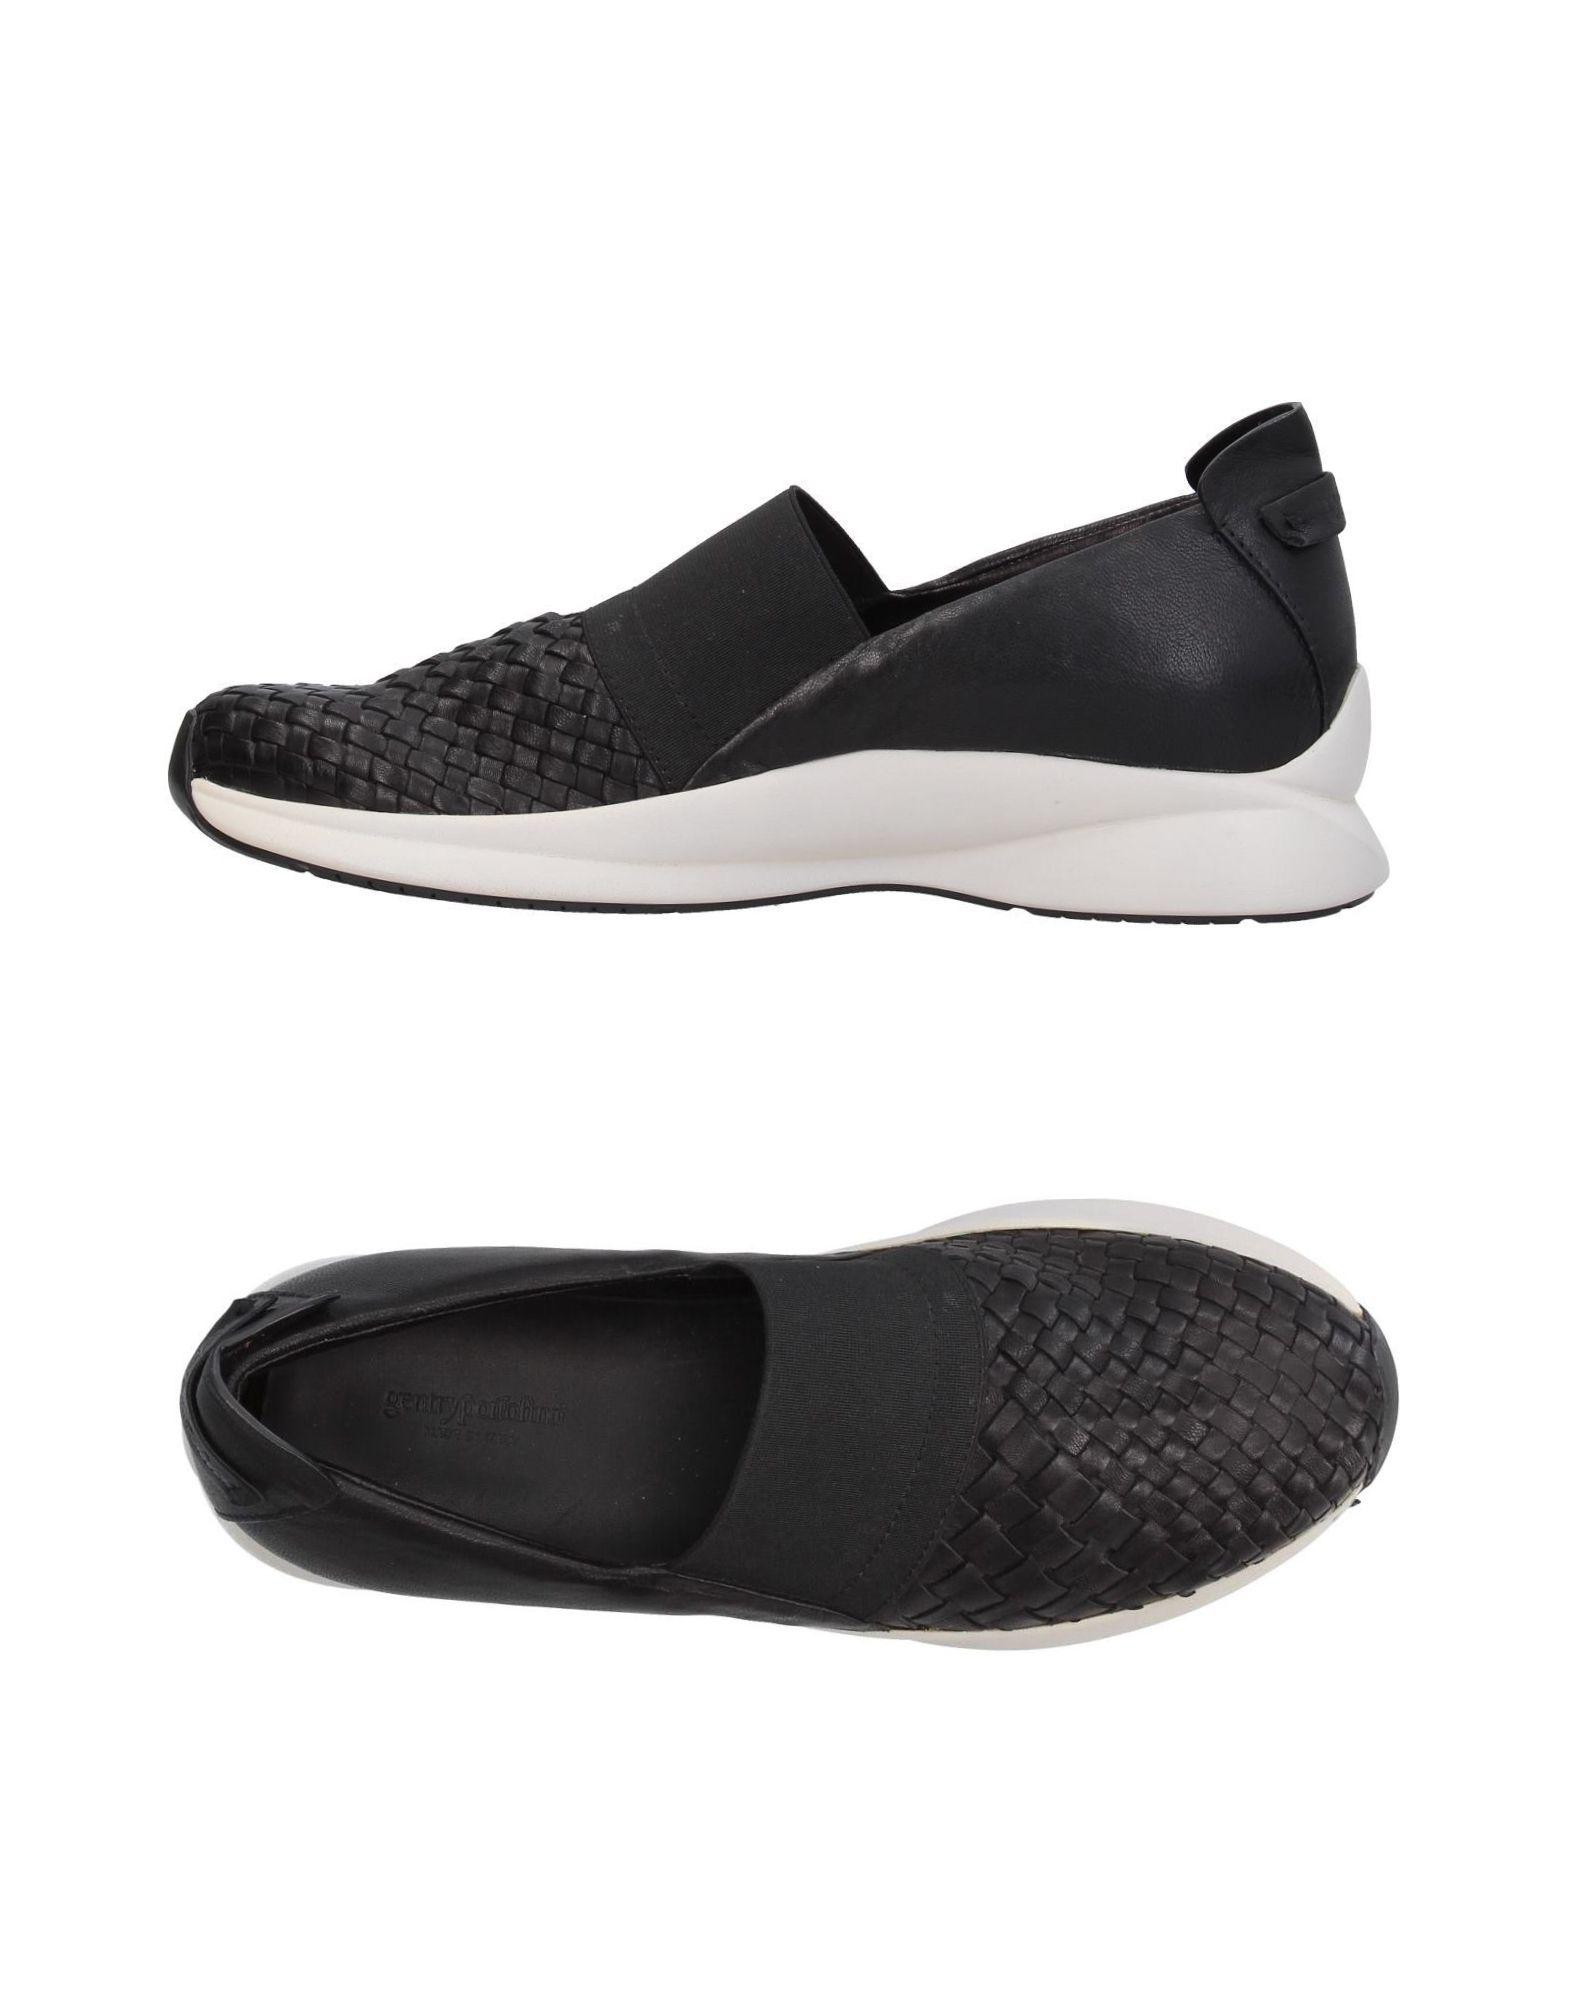 FOOTWEAR - Low-tops & sneakers Gentryportofino Outlet Locations For Sale New Styles Cheap Online Fashion Style Online PfPjAqR